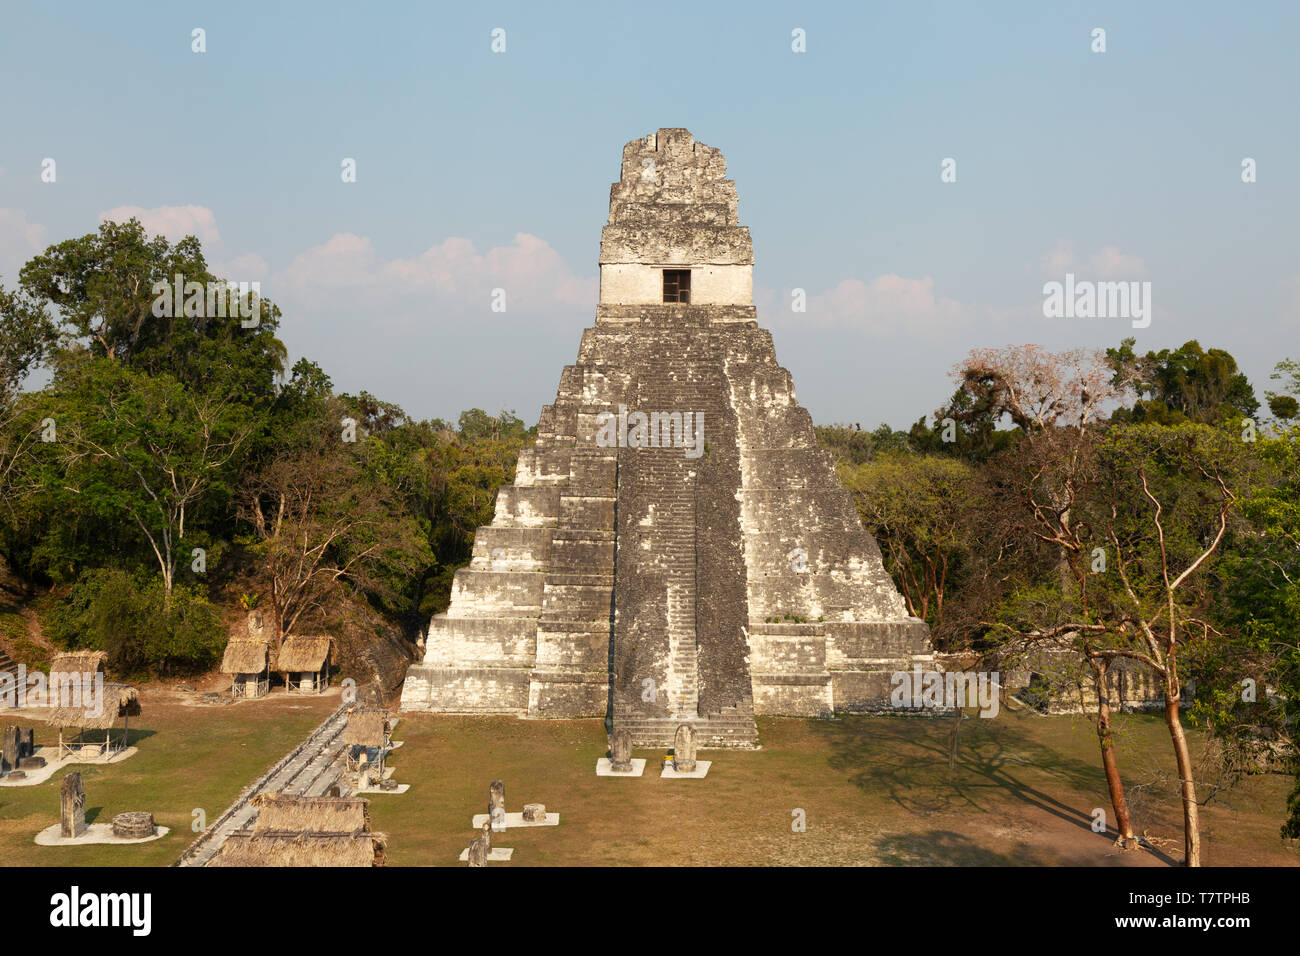 Tikal Guatemala, Temple 1, or Temple of the Great Jaguar, Mayan ruins UNESCO World Heritage site, Tikal National Park, Guatemala, Latin America - Stock Image